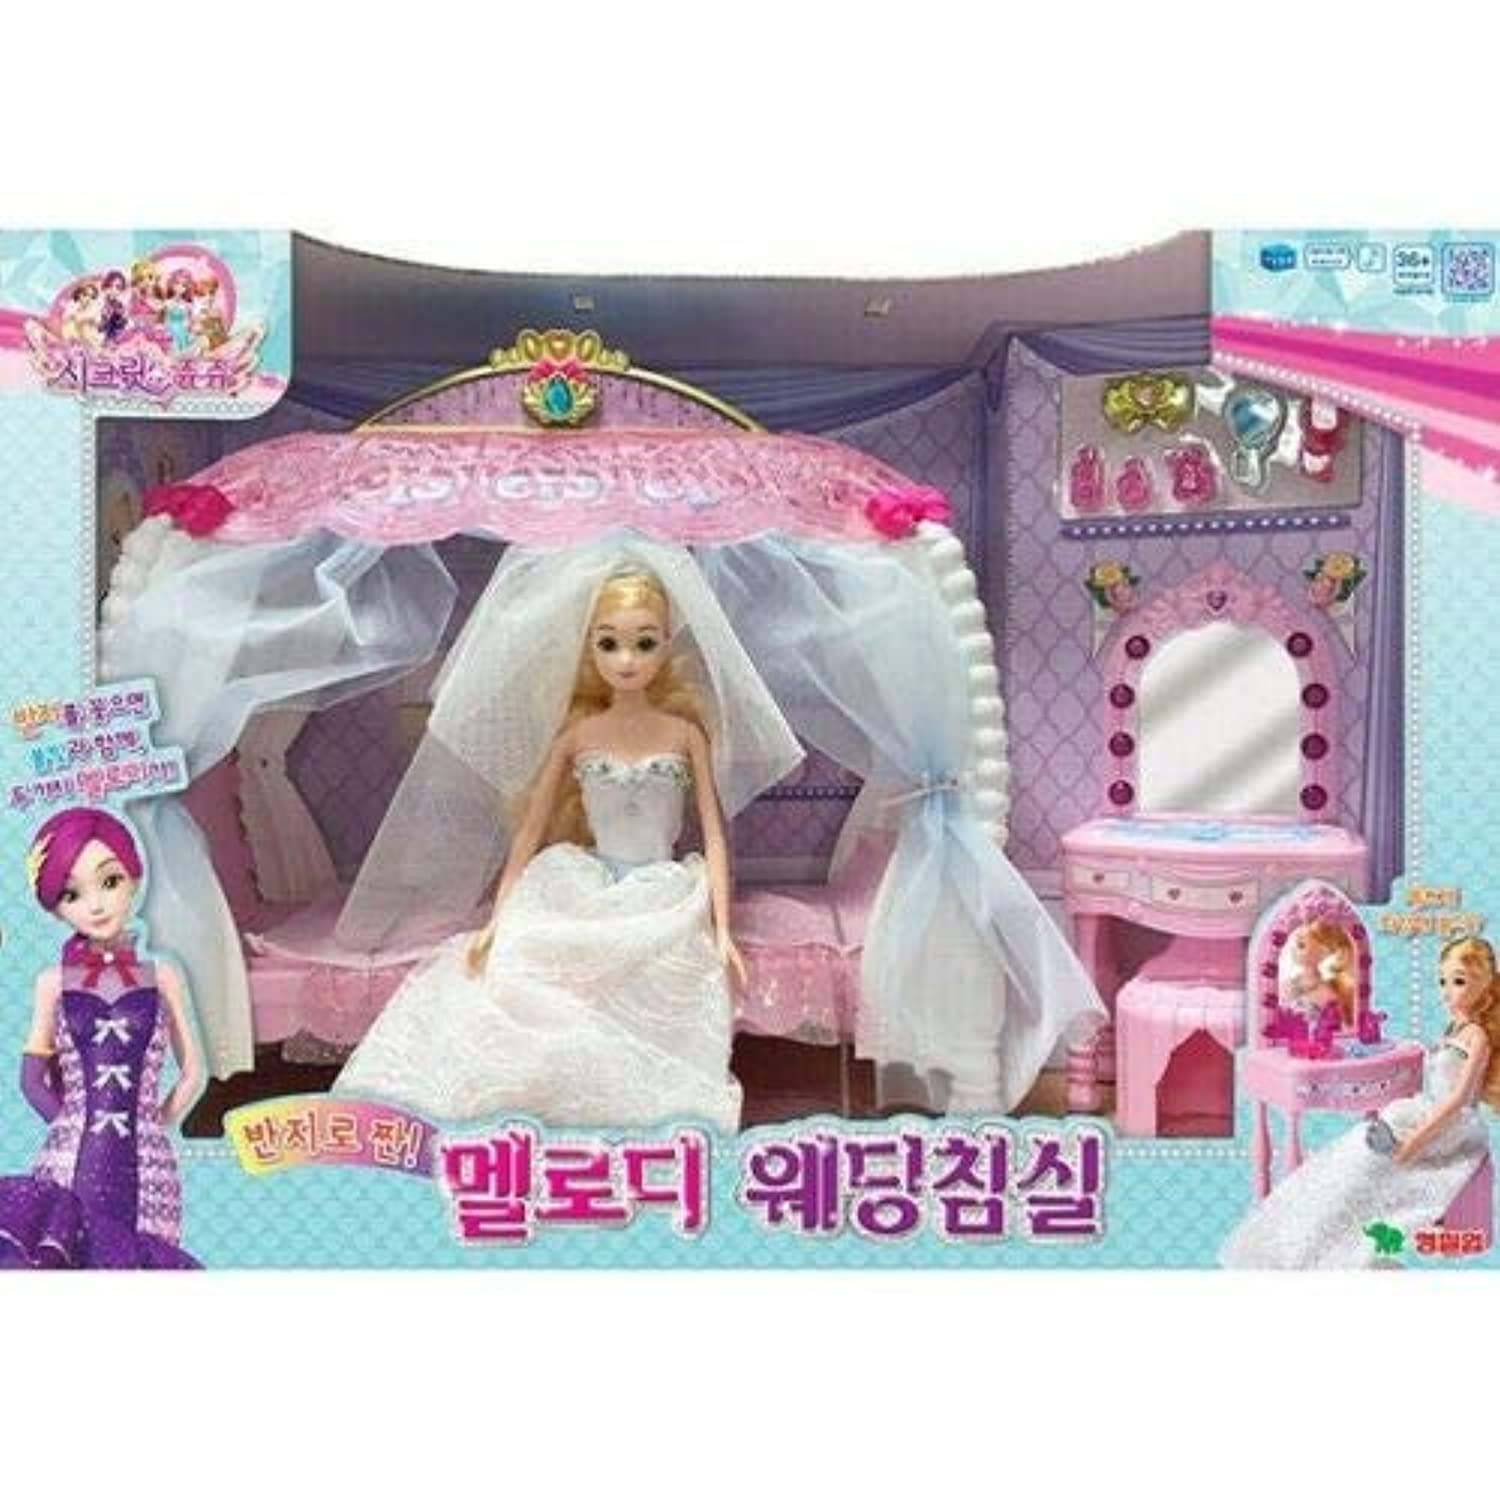 Youngtoys Secret Jouju Melody Wedding Bedroom おもちゃ [並行輸入品]